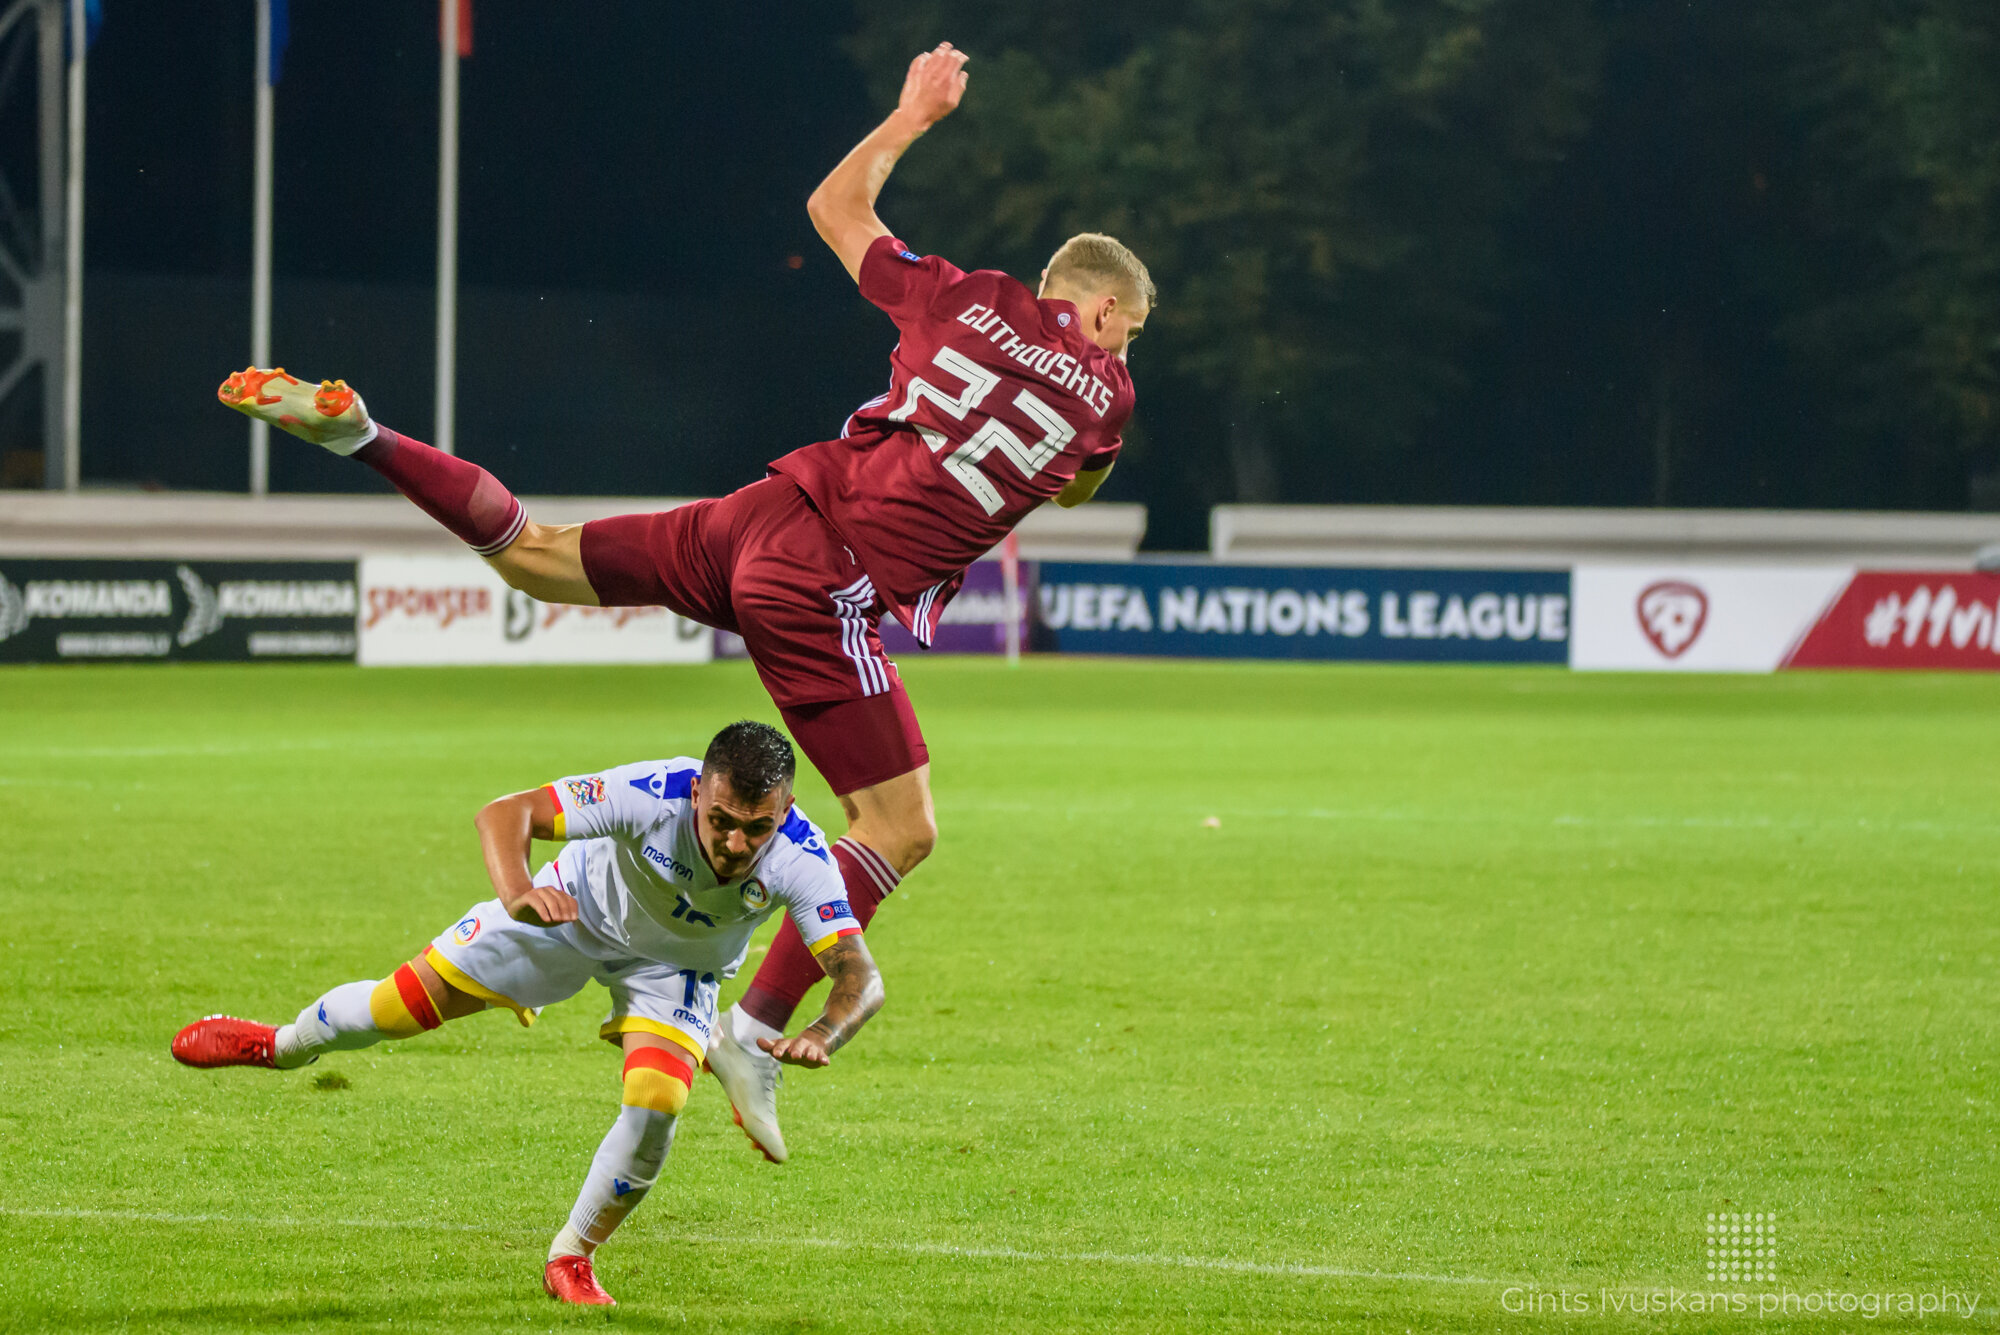 06.09.2018. RIGA, LATVIA. UEFA NATIONS LEAGUE game between National football team Latvia and National football team Andorra